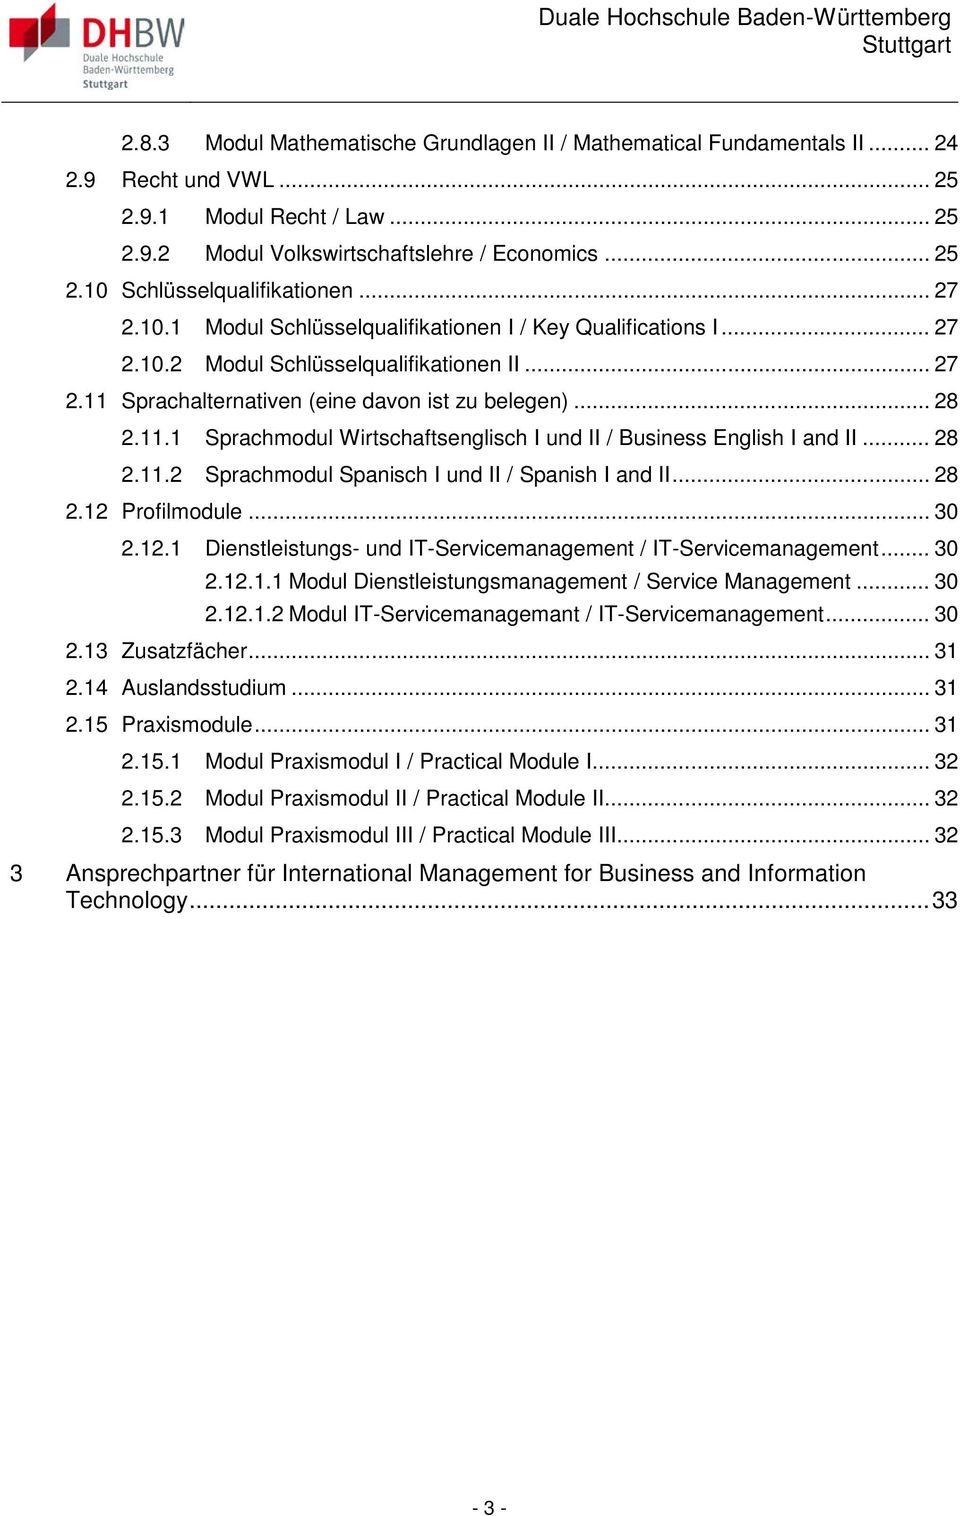 .. 28 2.11.2 Sprachmodul Spanisch I und II / Spanish I and II... 28 2.12 Profilmodule... 30 2.12.1 Dienstleistungs- und IT-Servicemanagement / IT-Servicemanagement... 30 2.12.1.1 Modul Dienstleistungsmanagement / Service Management.